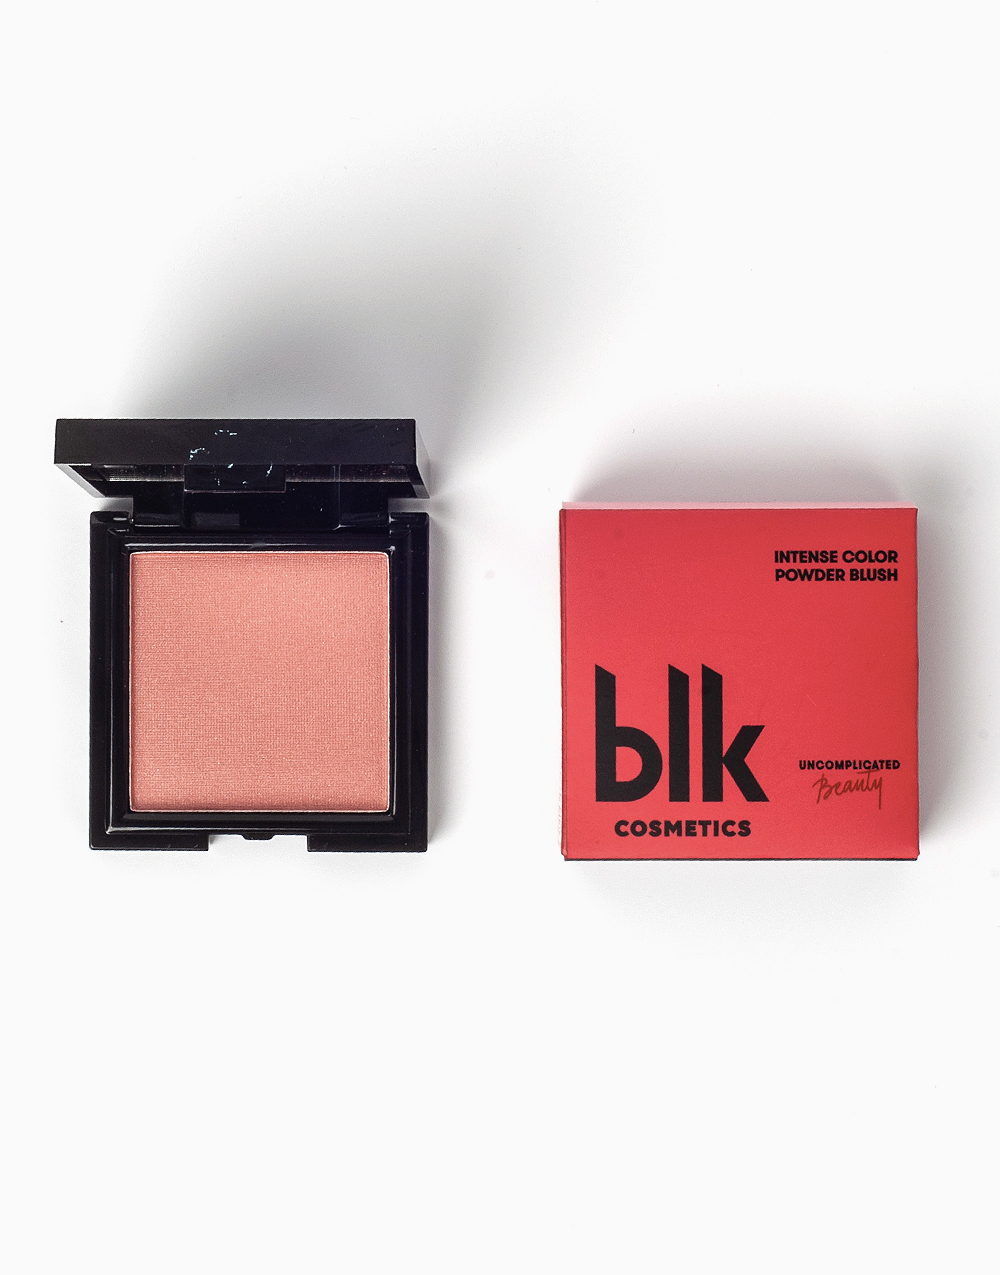 Intense Color Powder Blush in Flushed (Nearest Expiry: December 01, 2021) by BLK Cosmetics